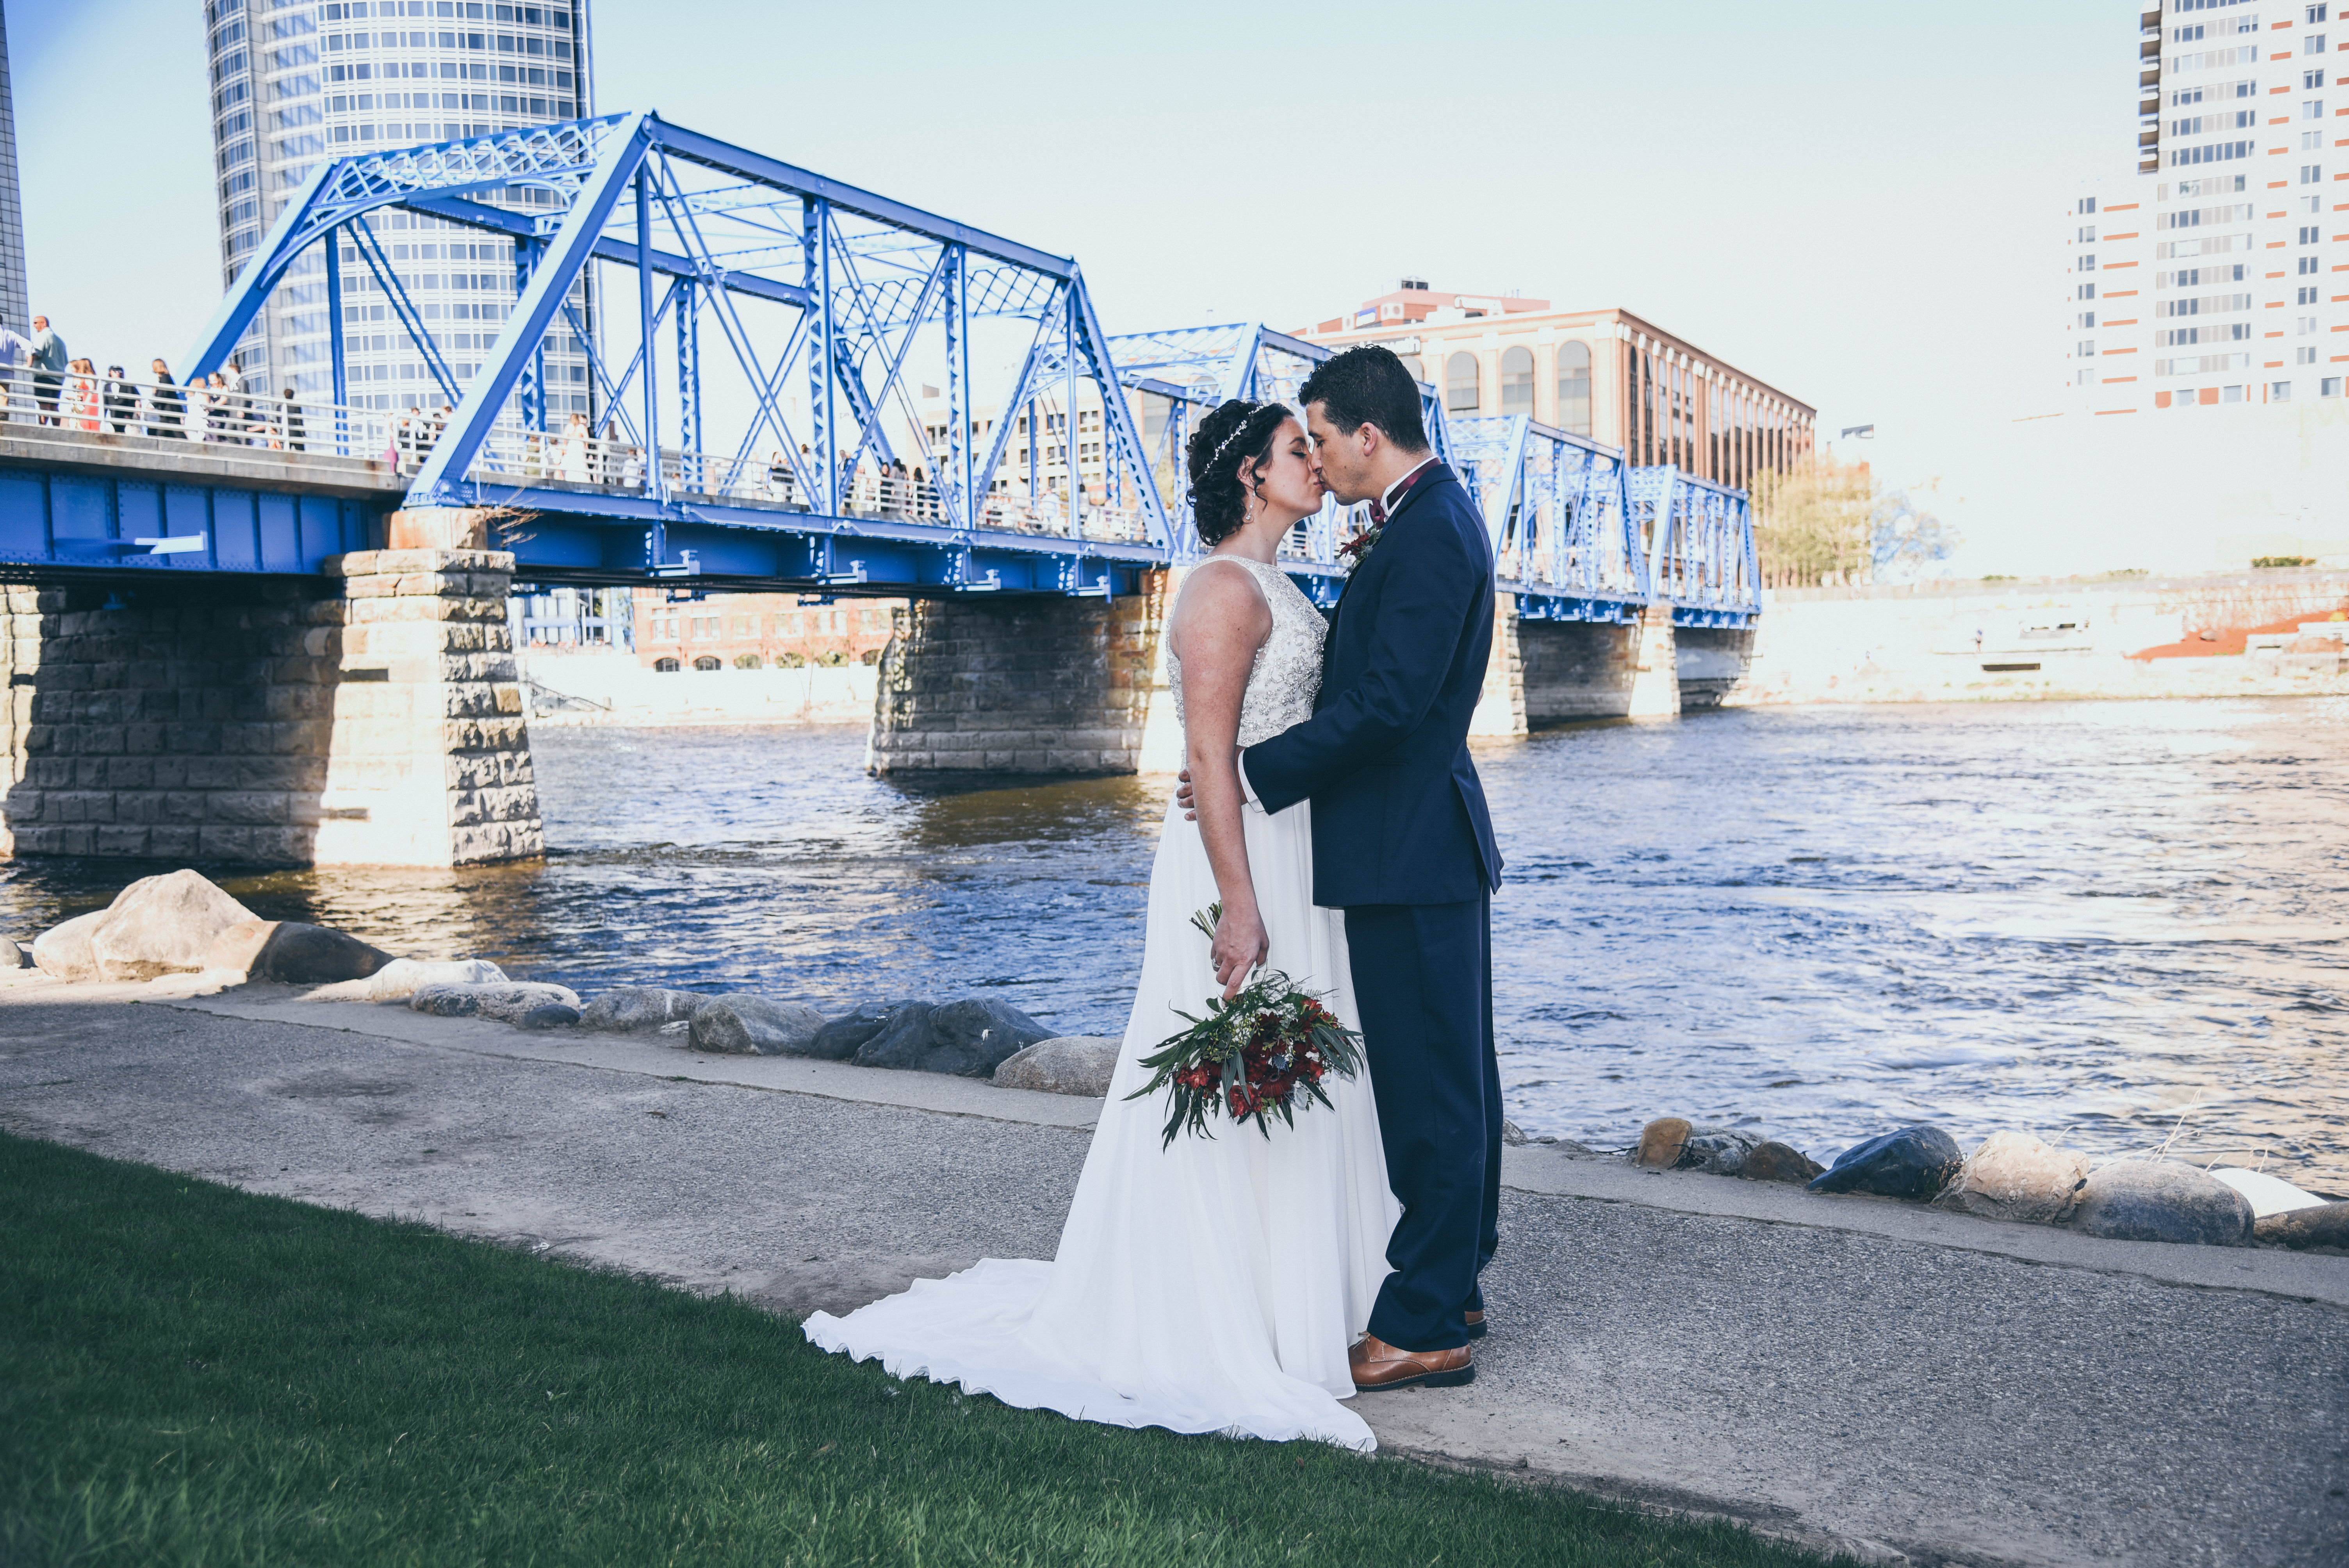 bride and groom kissing in front of a blue bridge